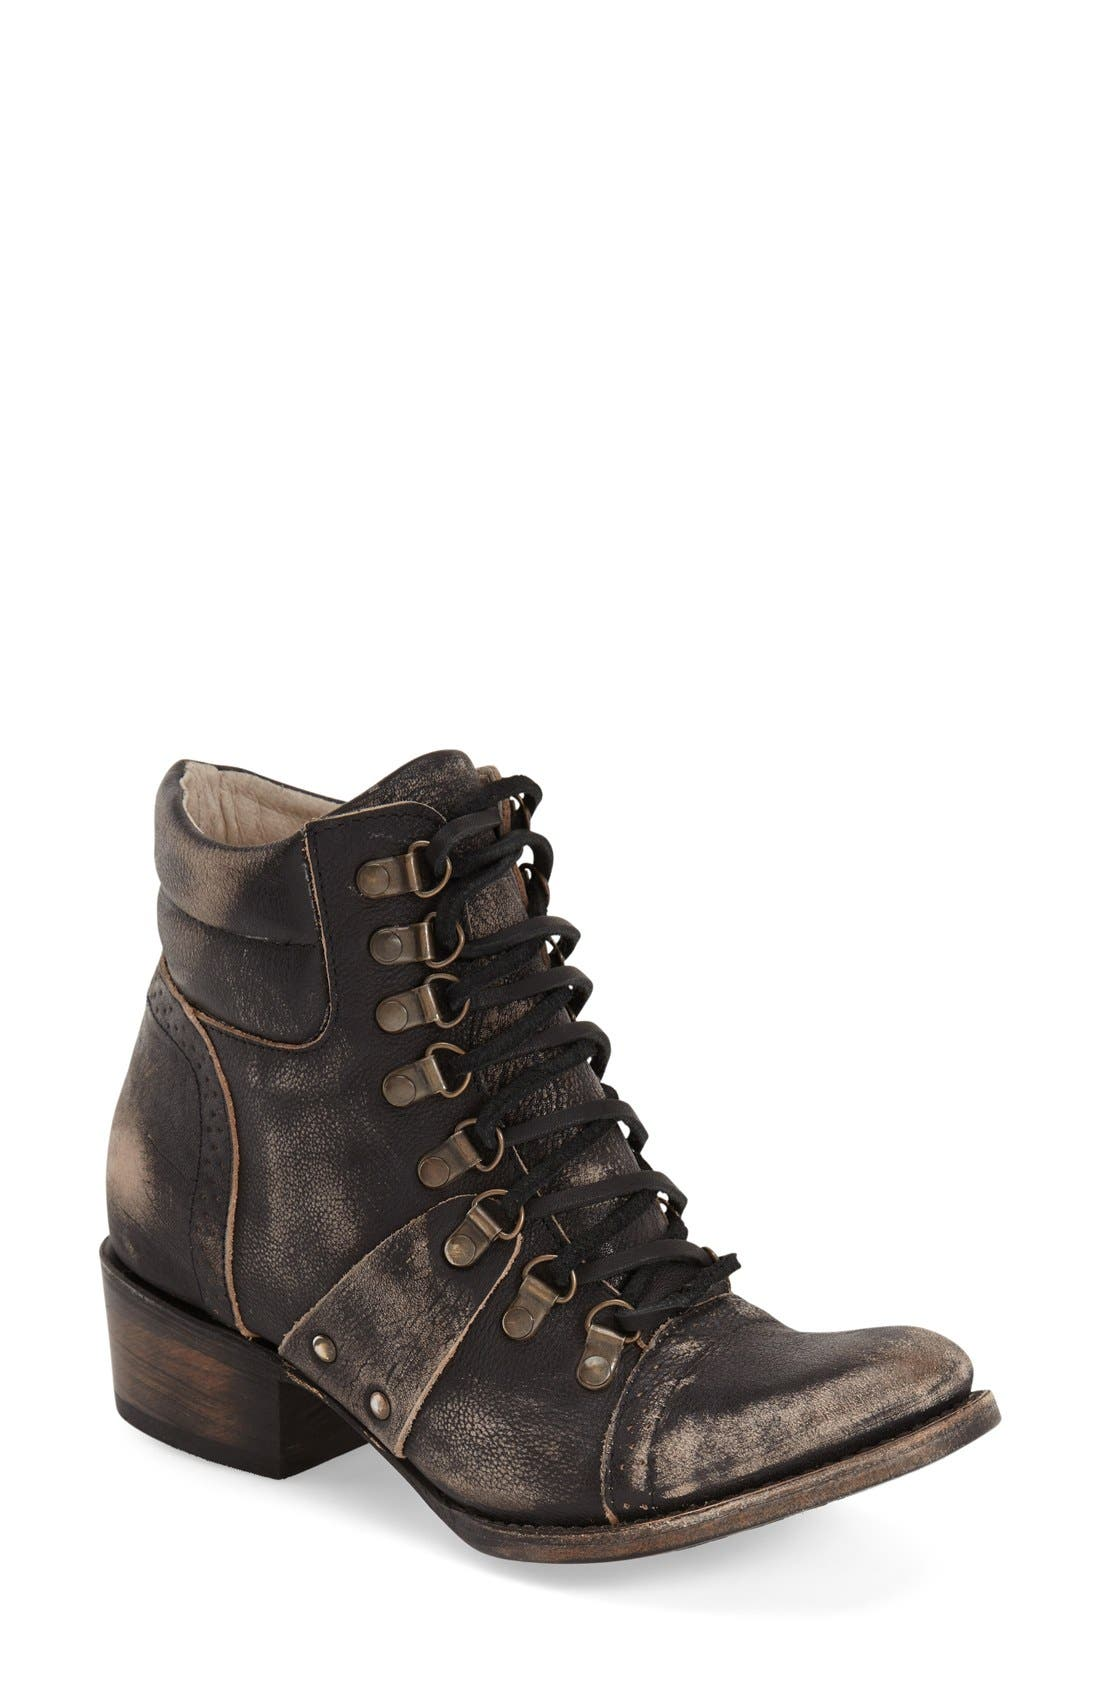 Main Image - Freebird by Steven 'Gage' Lace-Up Bootie (Women)